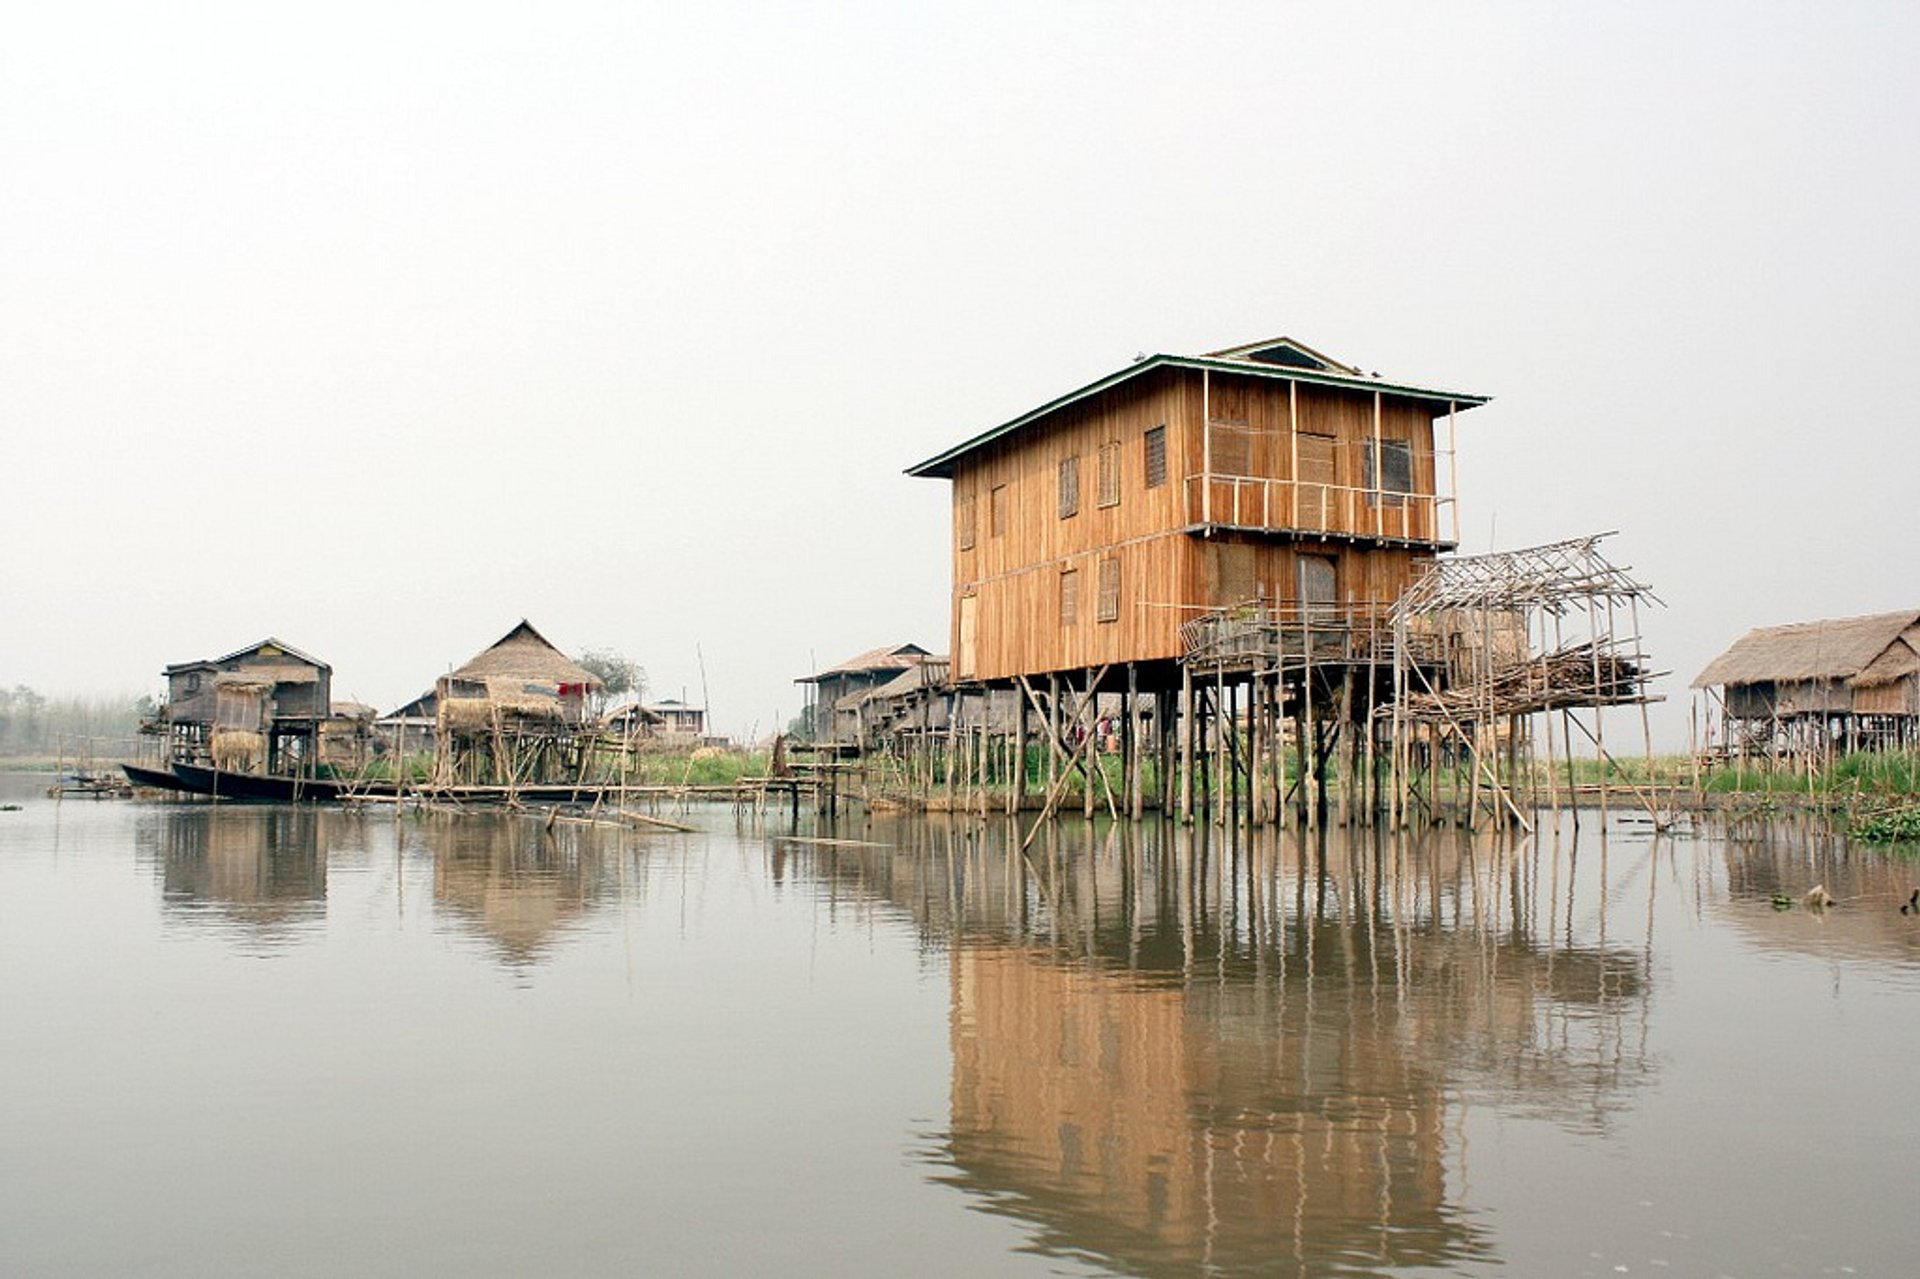 House at Thalé O village. This house is built only with wood and have many pile because the level of the lake are changing according the season. In this time the level is low because the season is dry from some month. 2020